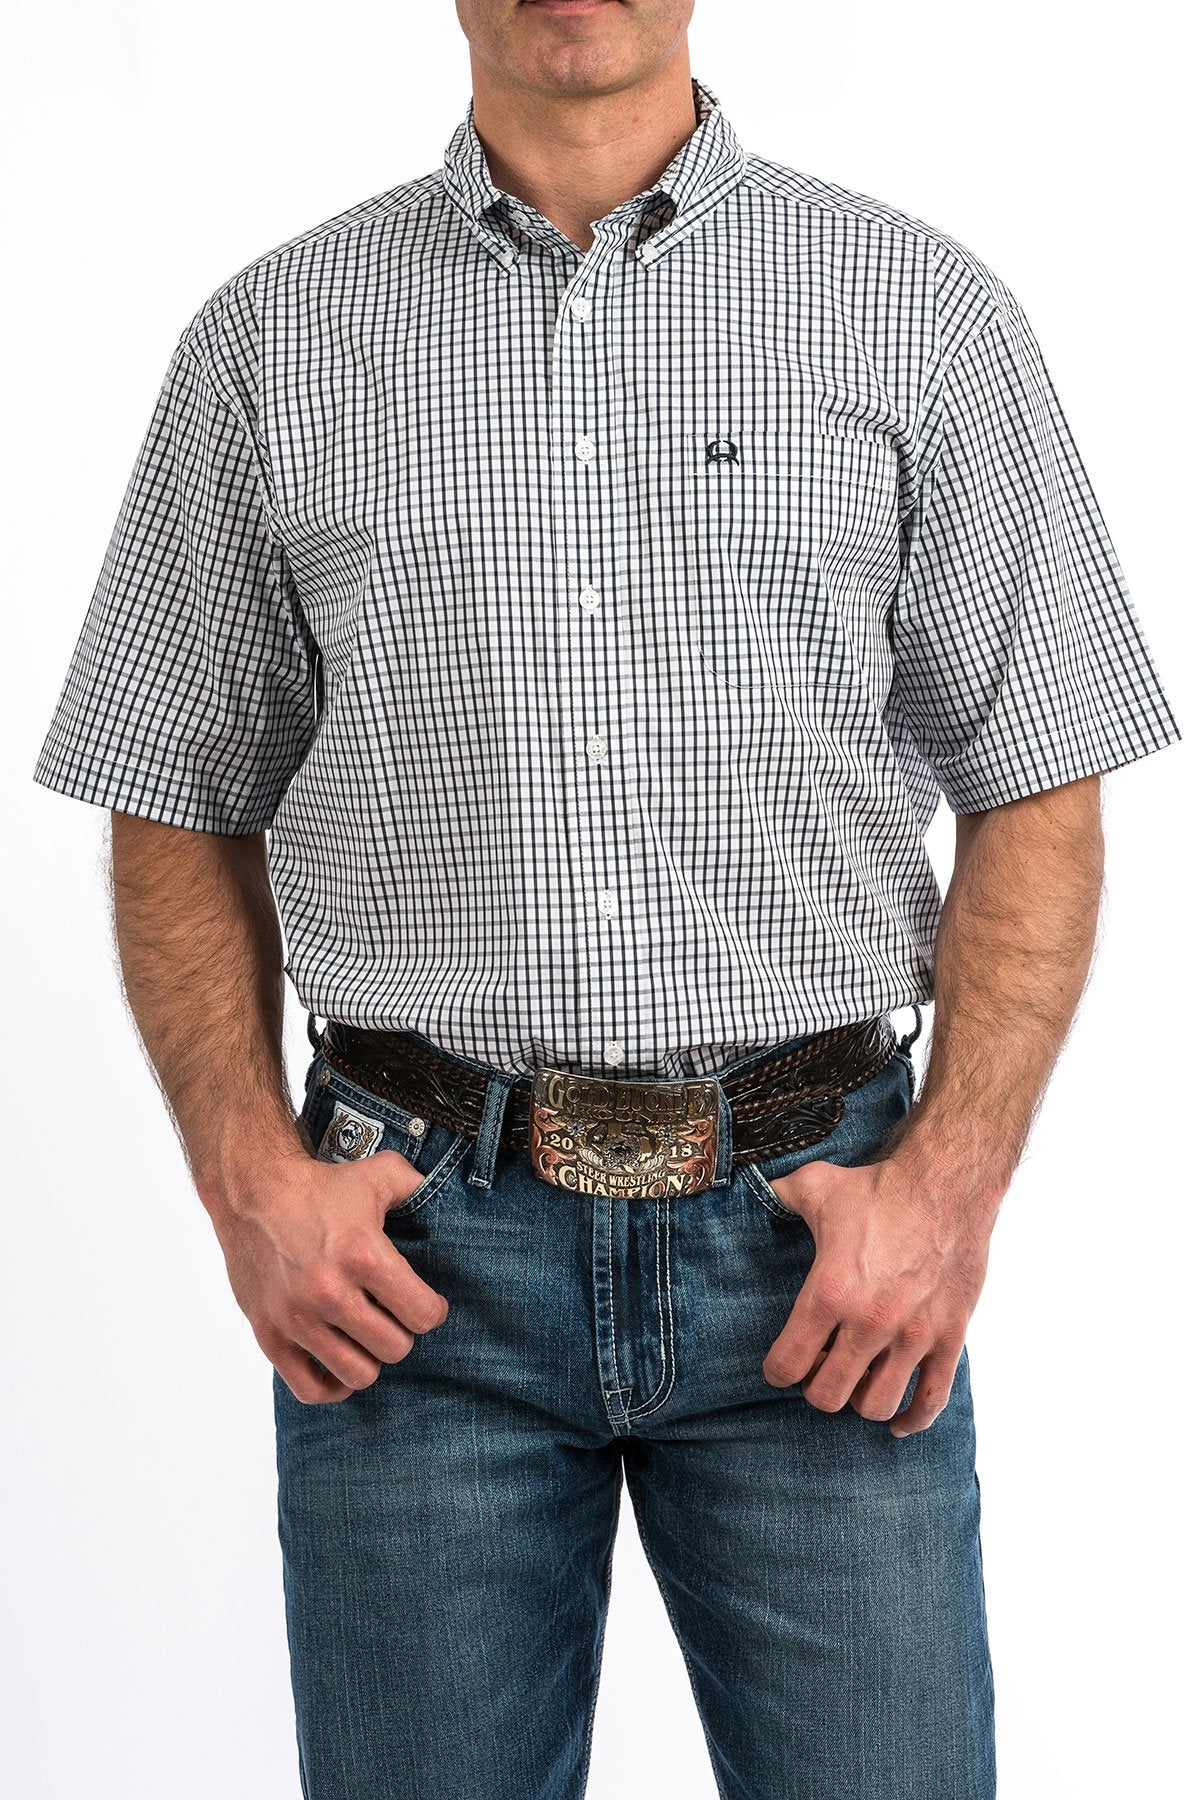 MENS NAVY CHECK ARENA FLEX SHIRT